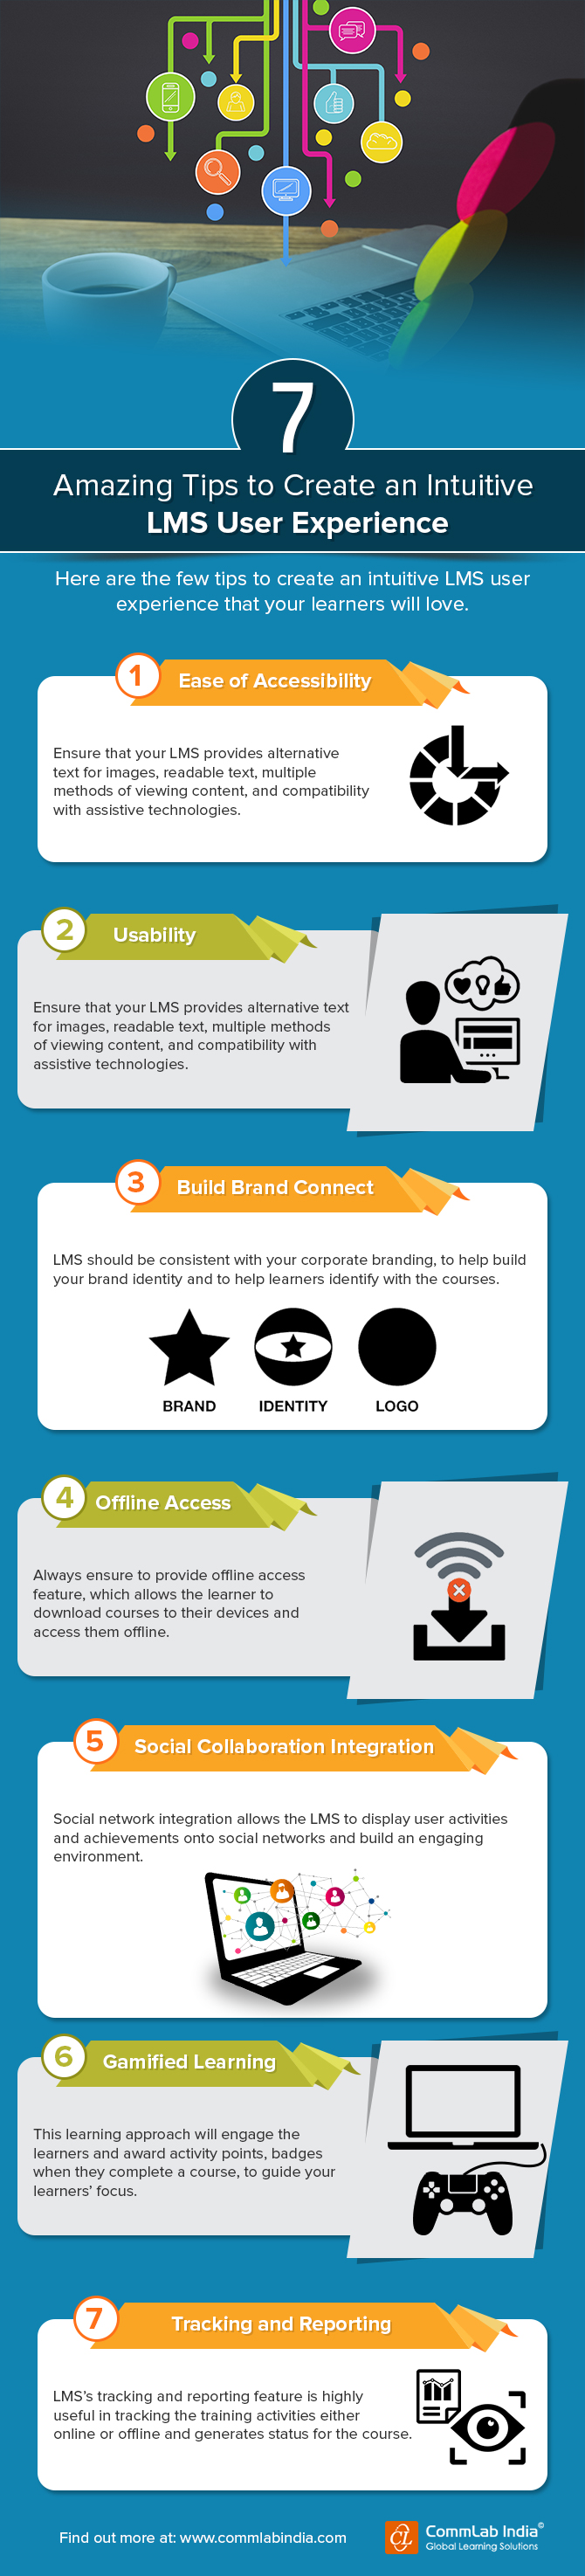 7 Amazing Tips to Create an Intuitive LMS User Experience [Infographic]